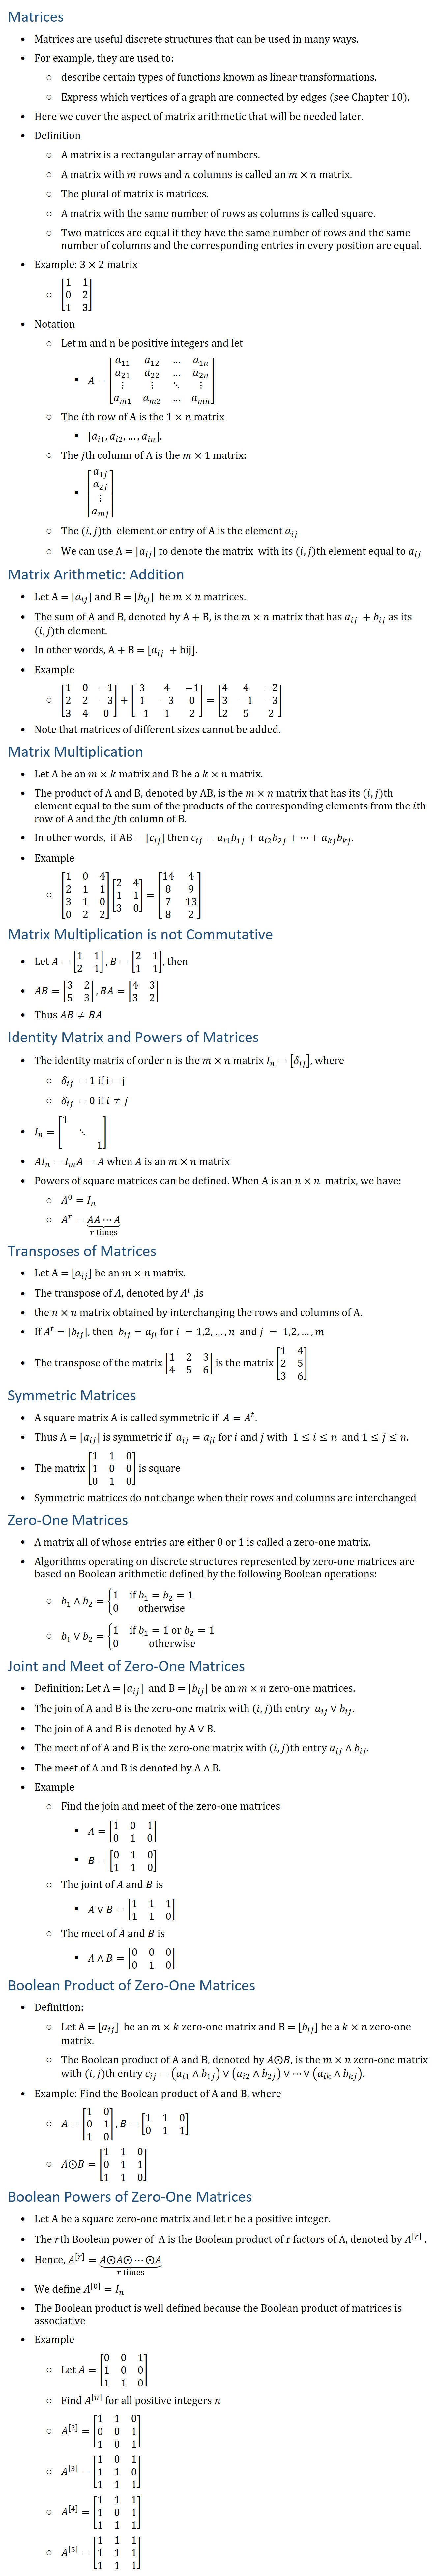 Matrices • Matrices are useful discrete structures that can be used in many ways. • For example, they are used to: ○ describe certain types of functions known as linear transformations. ○ Express which vertices of a graph are connected by edges (see Chapter 10). • Here we cover the aspect of matrix arithmetic that will be needed later. • Definition ○ A matrix is a rectangular array of numbers. ○ A matrix with m rows and n columns is called an m×n matrix. ○ The plural of matrix is matrices. ○ A matrix with the same number of rows as columns is called square. ○ Two matrices are equal if they have the same number of rows and the same number of columns and the corresponding entries in every position are equal. • Example: 3×2 matrix ○ [■8(1&1@0&2@1&3)] • Notation ○ Let m and n be positive integers and let § A=[■8(a_11&a_12&…&a_1n@a_21&a_22&…&a_2n@⋮&⋮&⋱&⋮@a_m1&a_m2&…&a_mn )] ○ The ith row of A is the 1×n matrix § [a_i1, a_i2,…,a_in]. ○ The jth column of A is the m×1 matrix: § [█(a_1j@a_2j@⋮@a_mj )] ○ The (i,j)th element or entry of A is the element a_ij ○ We can use A = [a_ij] to denote the matrix with its (i,j)th element equal to a_ij Matrix Arithmetic: Addition • Let A = [a_ij] and B = [b_ij] be m×n matrices. • The sum of A and B, denoted by A + B, is the m×n matrix that has a_ij + b_ij as its (i,j)th element. • In other words, A + B = [a_ij + bij]. • Example ○ [■8(1&0&−1@2&2&−3@3&4&0)]+[■8(3&4&−1@1&−3&0@−1&1&2)]=[■8(4&4&−2@3&−1&−3@2&5&2)] • Note that matrices of different sizes cannot be added. Matrix Multiplication • Let A be an m×k matrix and B be a k×n matrix. • The product of A and B, denoted by AB, is the m×n matrix that has its (i,j)th element equal to the sum of the products of the corresponding elements from the ith row of A and the jth column of B. • In other words, if AB = [c_ij] then c_ij=a_i1 b_1j+a_i2 b_2j+⋯+a_kj b_kj. • Example ○ [■8(1&0&4@2&1&1@3&1&0@0&2&2)][■8(2&4@1&1@3&0)]=[■8(14&4@8&9@7&13@8&2)] Matrix Multiplication is not Commutative • Let A=[■8(1&1